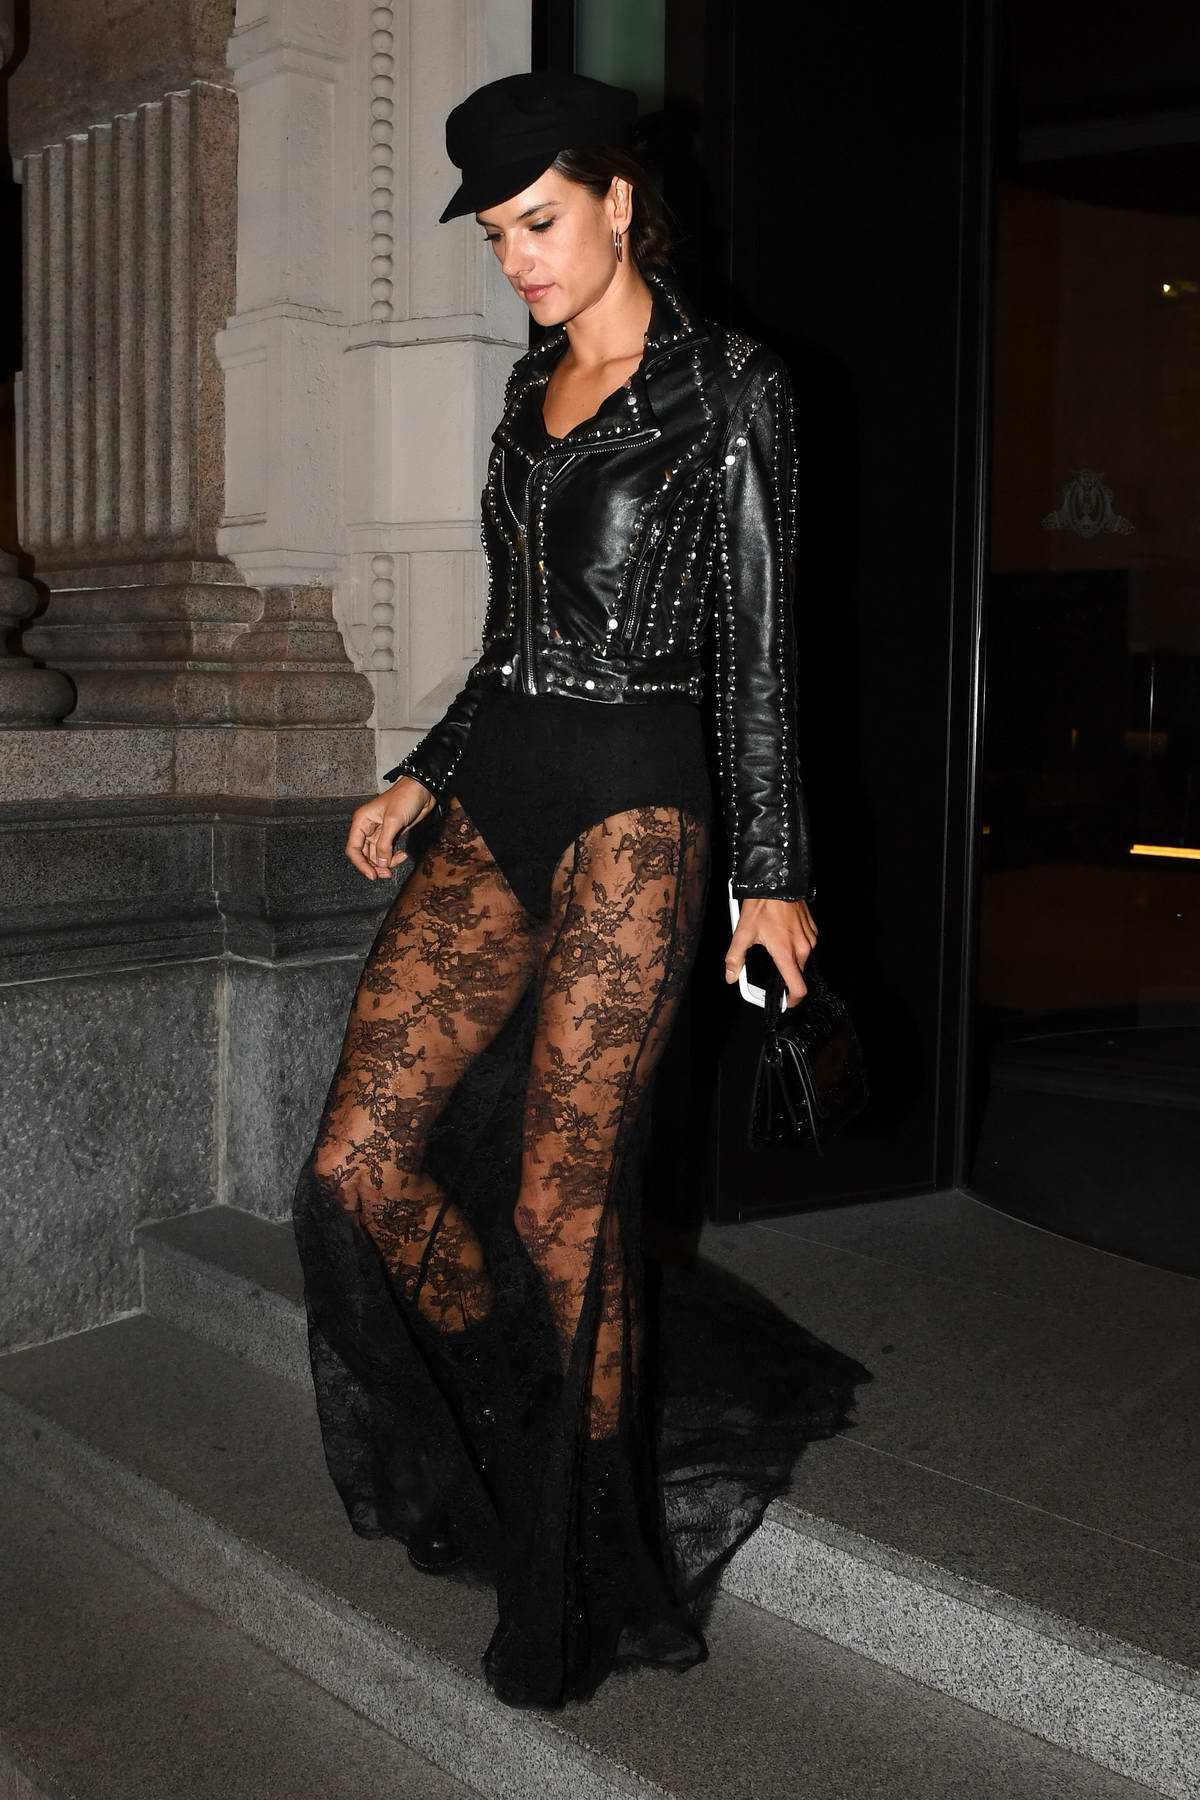 52147954_alessandra-ambrosio-in-all-black-out-and-about-in-milan-italy-190917_2.jpg